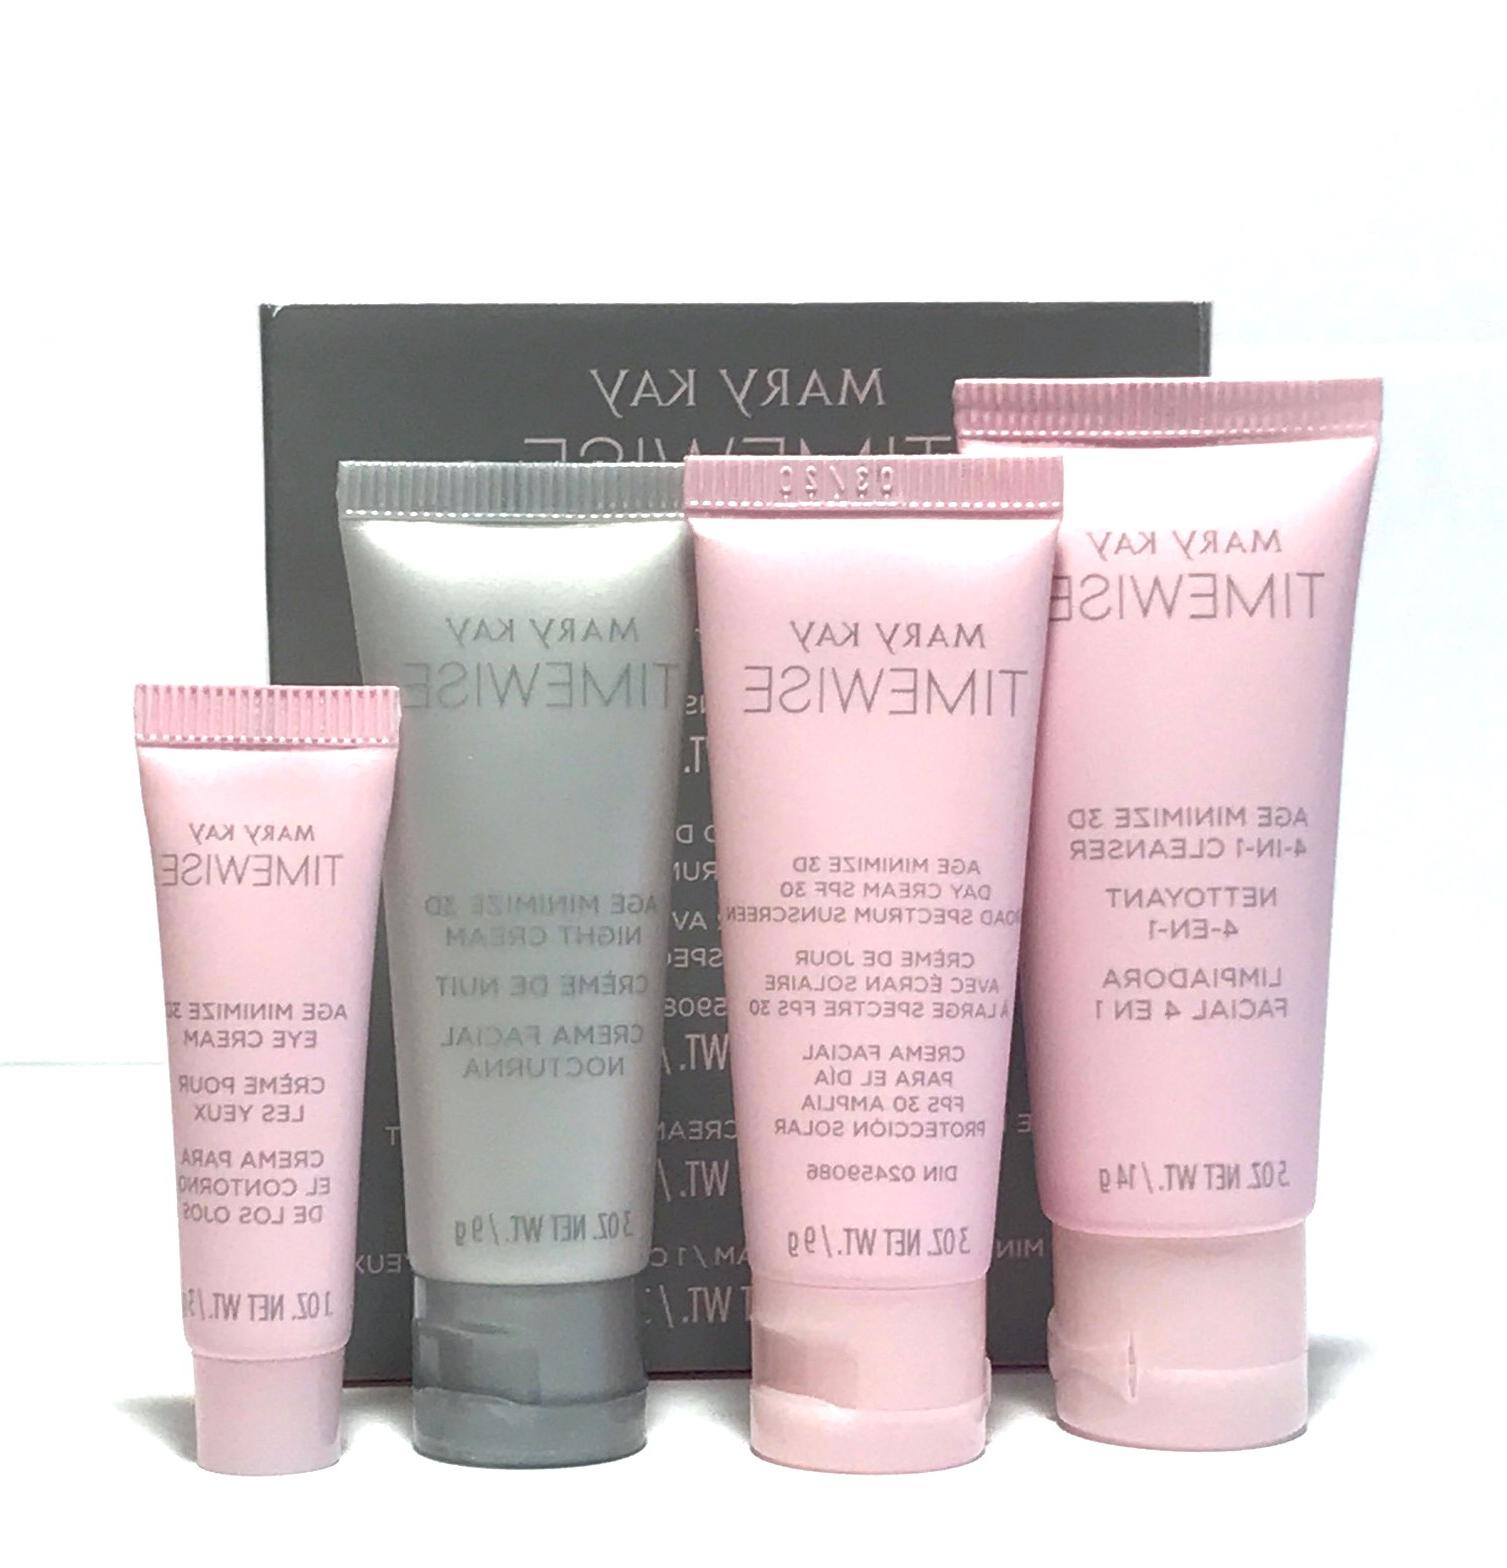 MARY KAY 3D AGE CHOOSE~SKIN CLEANSER~DAY~NIGHT~EYE CREAM!